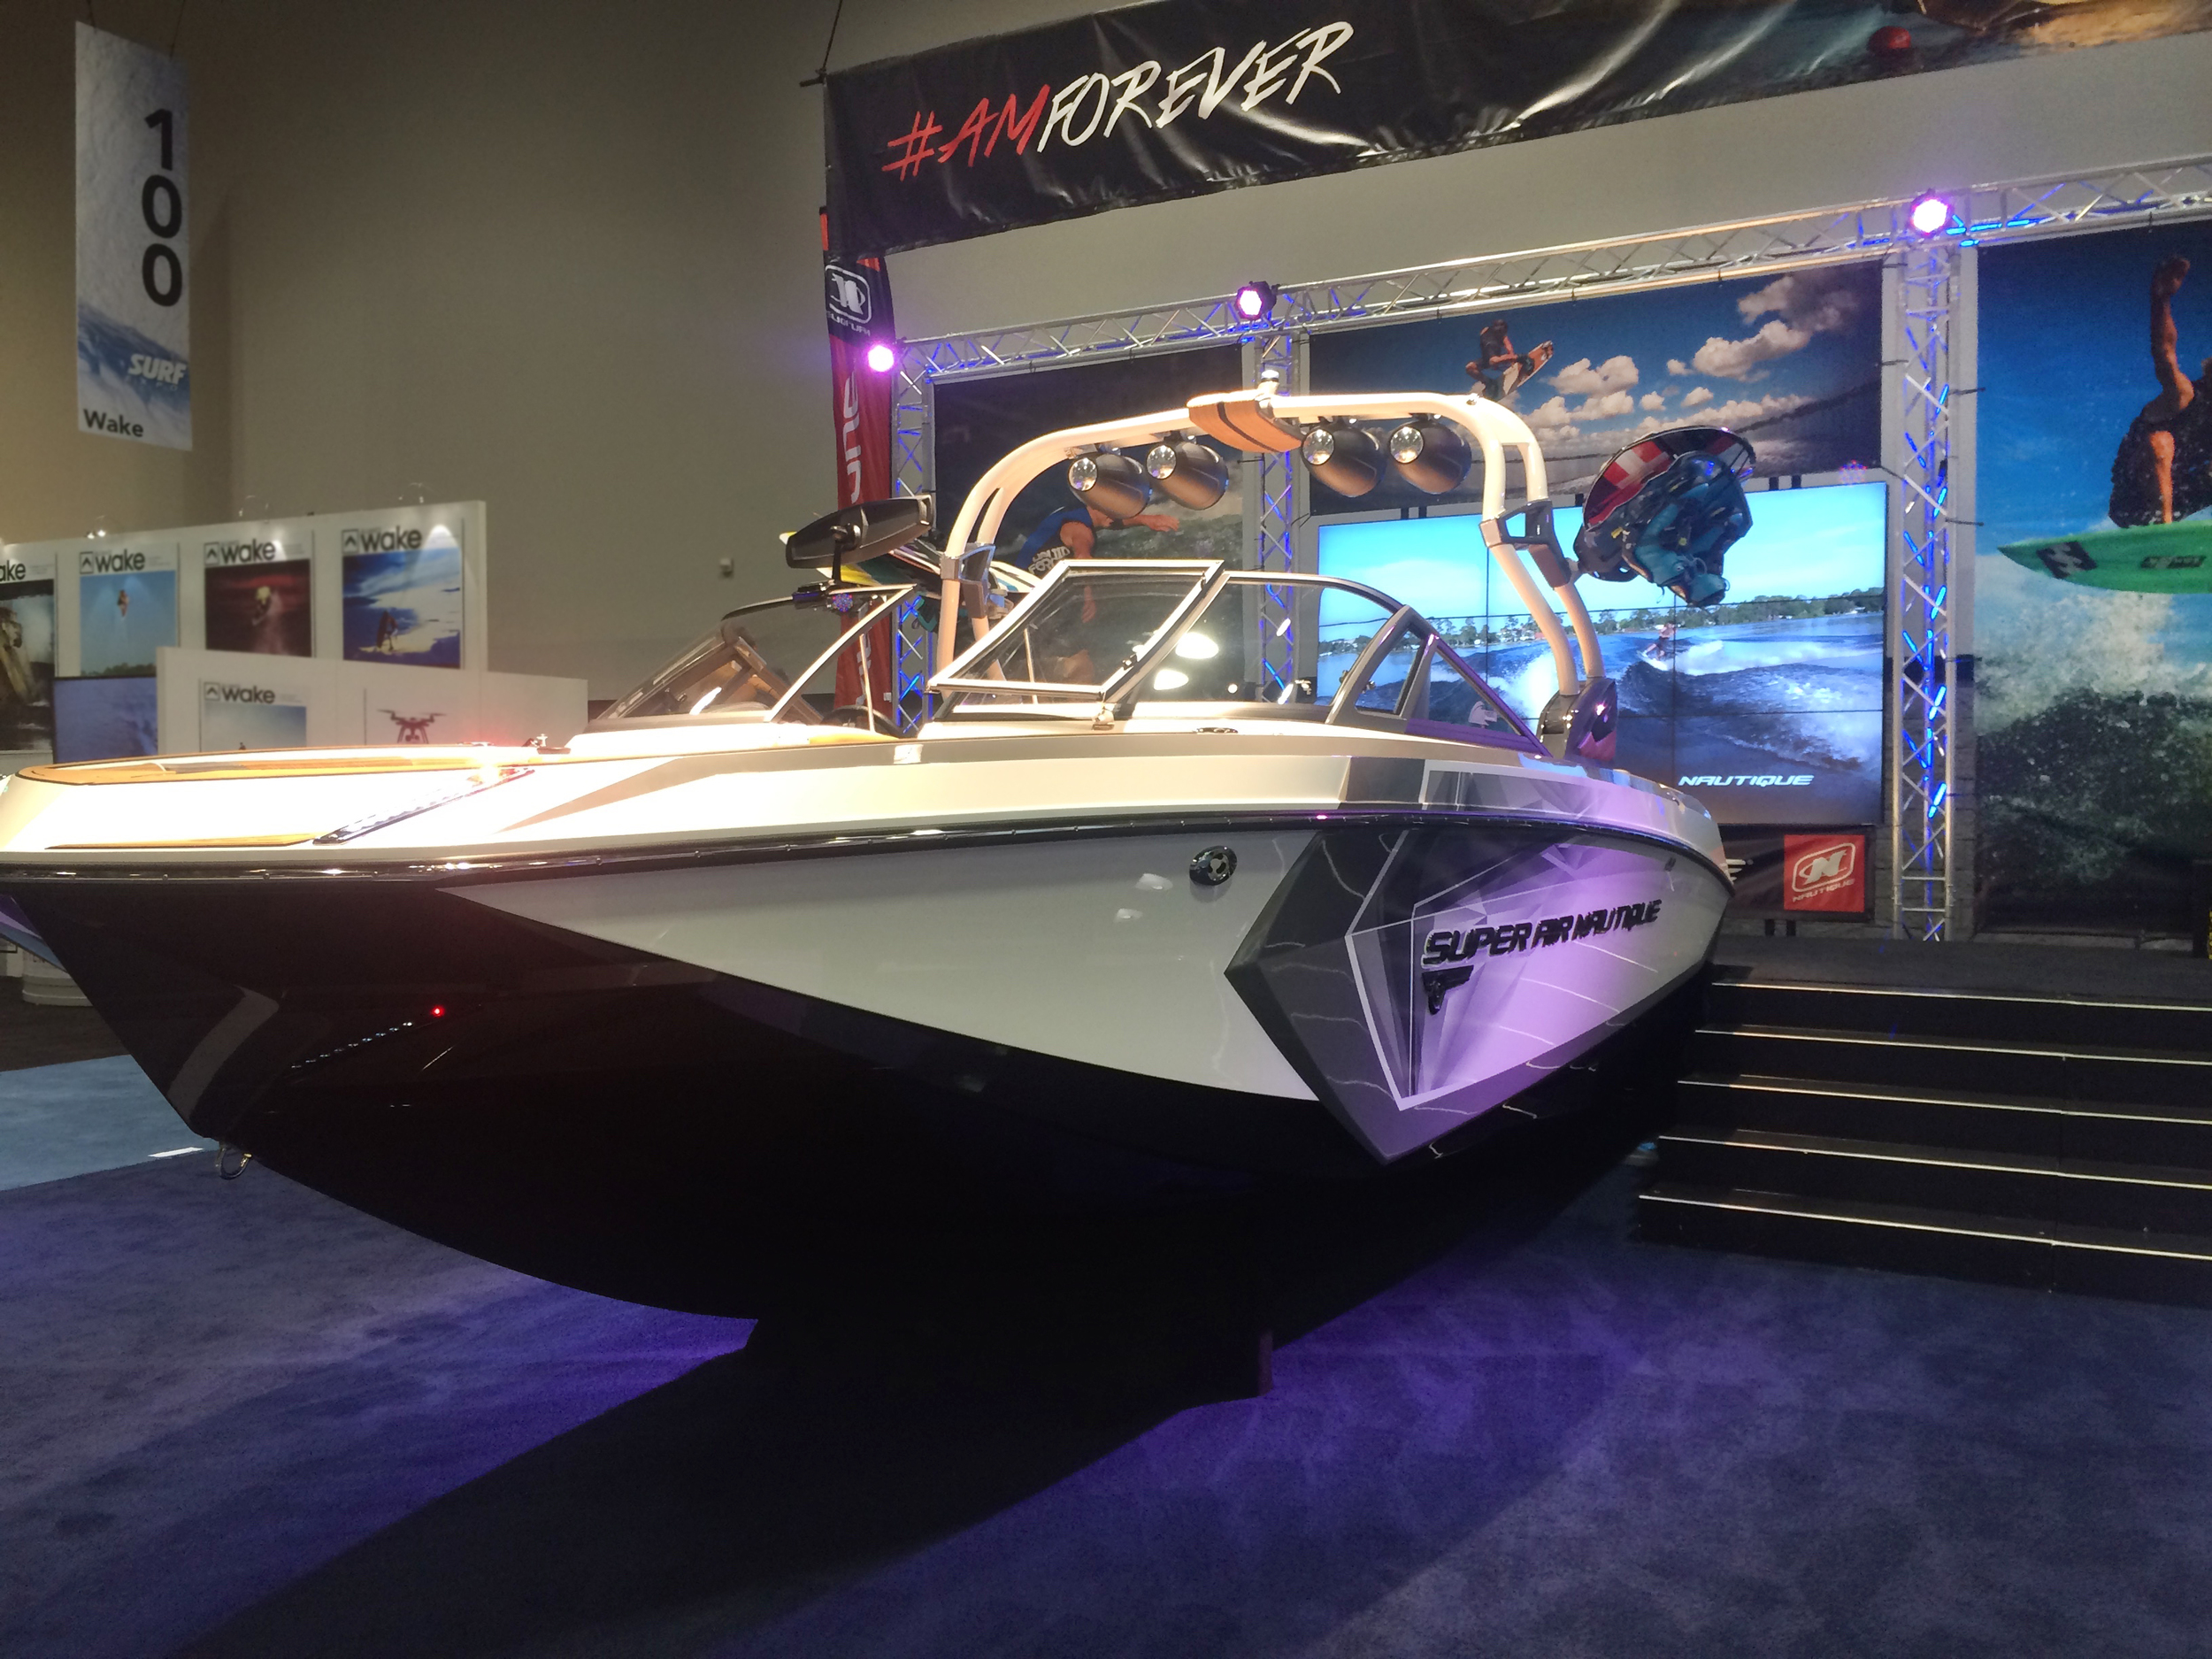 Simple but cool boat display from Nautique that made it feel like the wake was really right behind it.